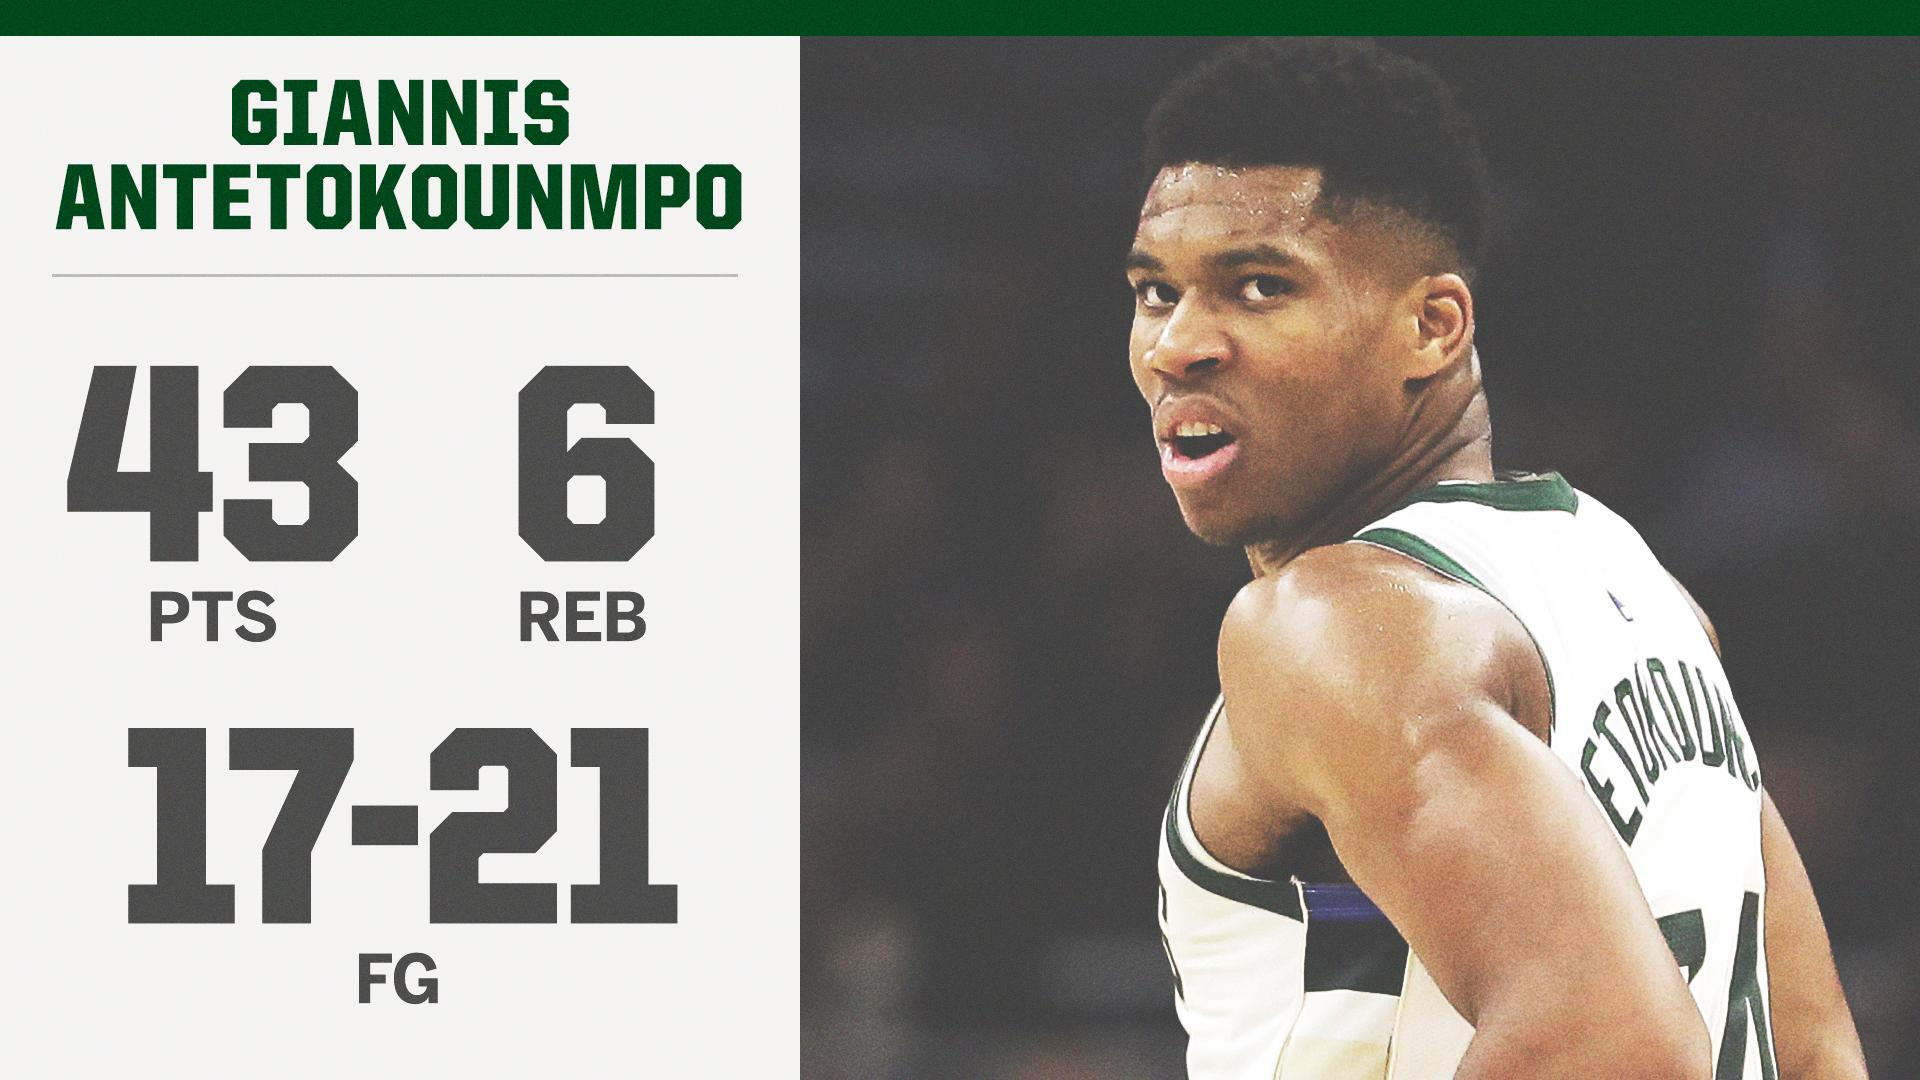 Giannis making a strong case for MVP �� https://t.co/PMcoxY7Faf